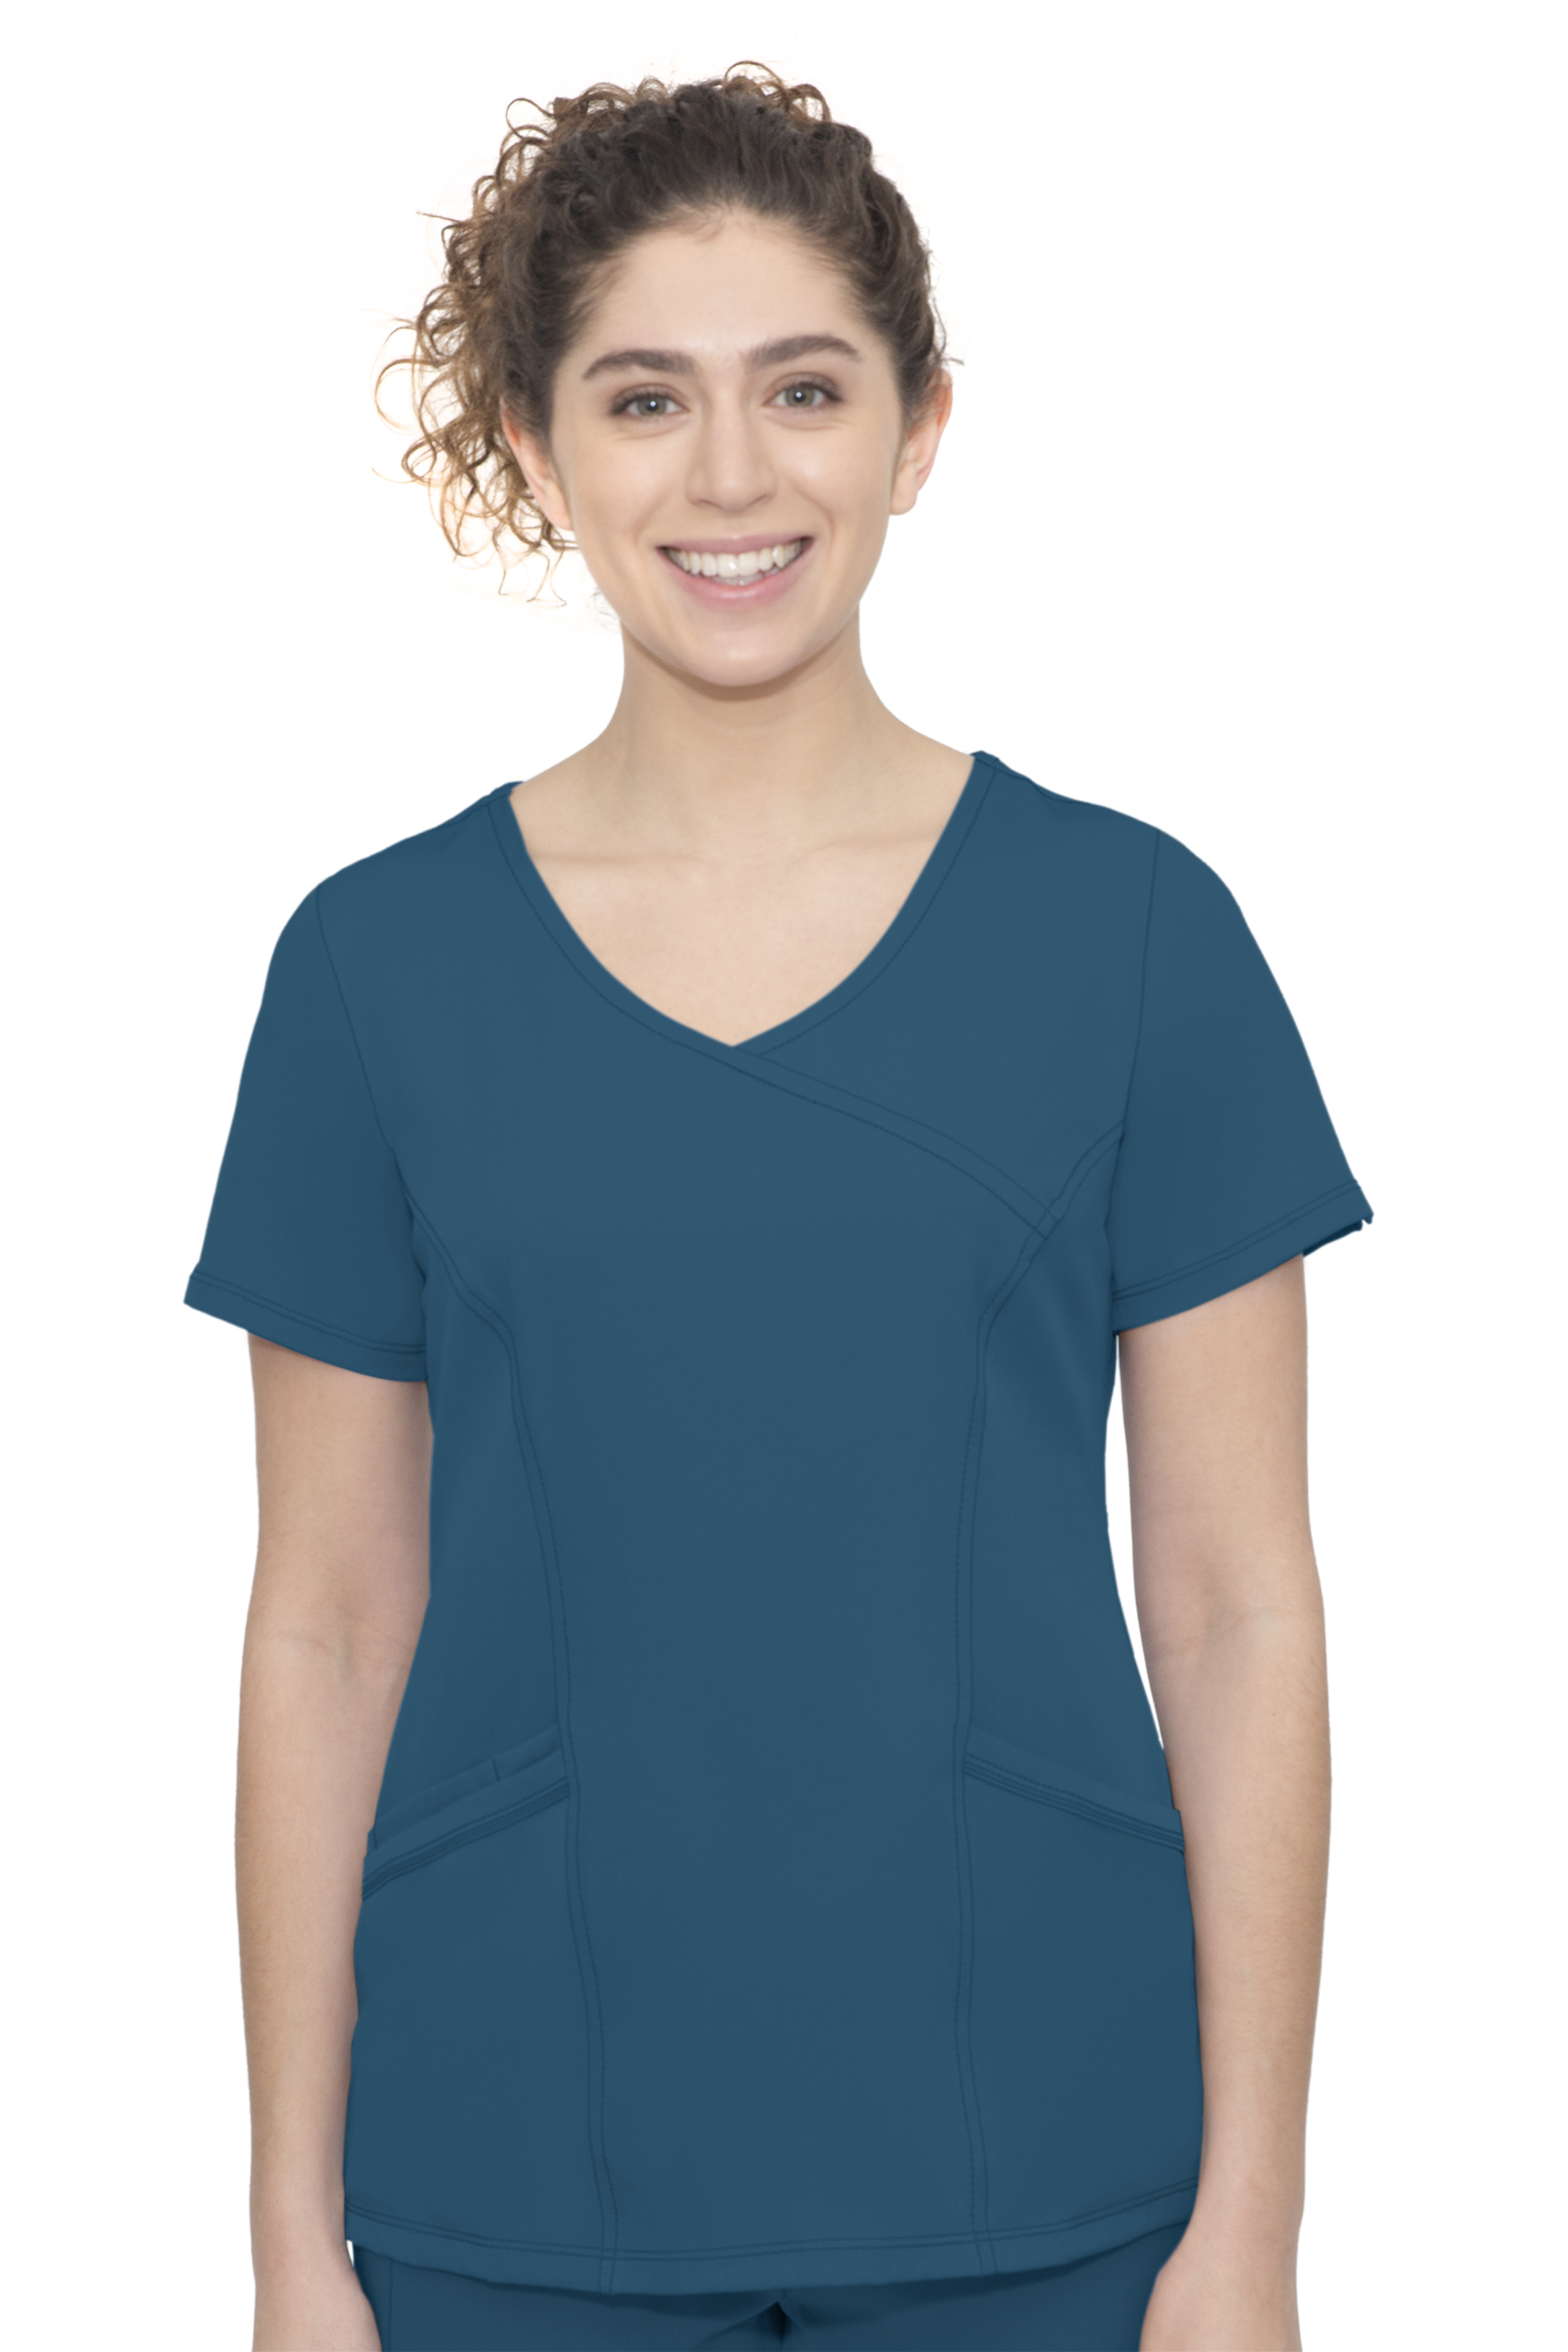 Madison Top-Faux Wrap Neck Top With 3 Pockets & 1 Media Pocket & Front & Back Princess Seam-Hh Works